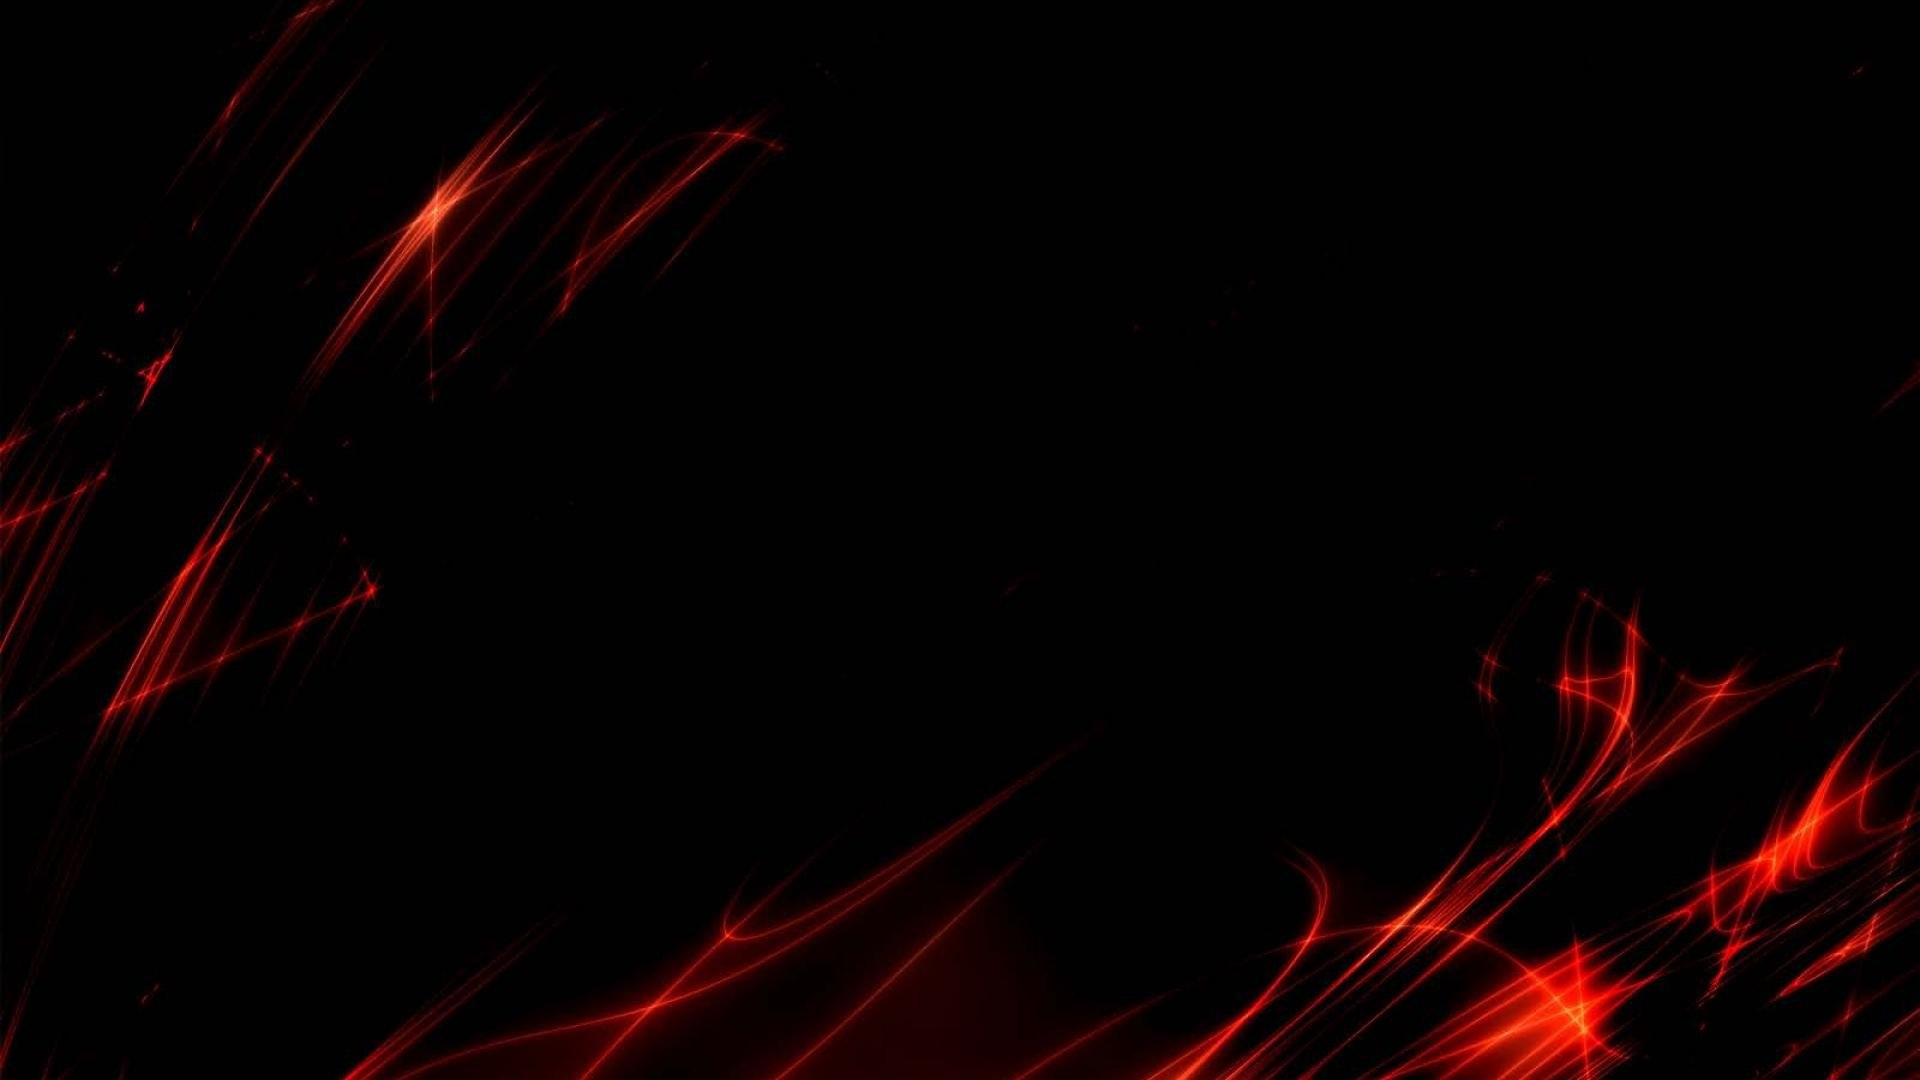 Dark Red Abstract Wallpaper, Dark Red Abstract Pics for .